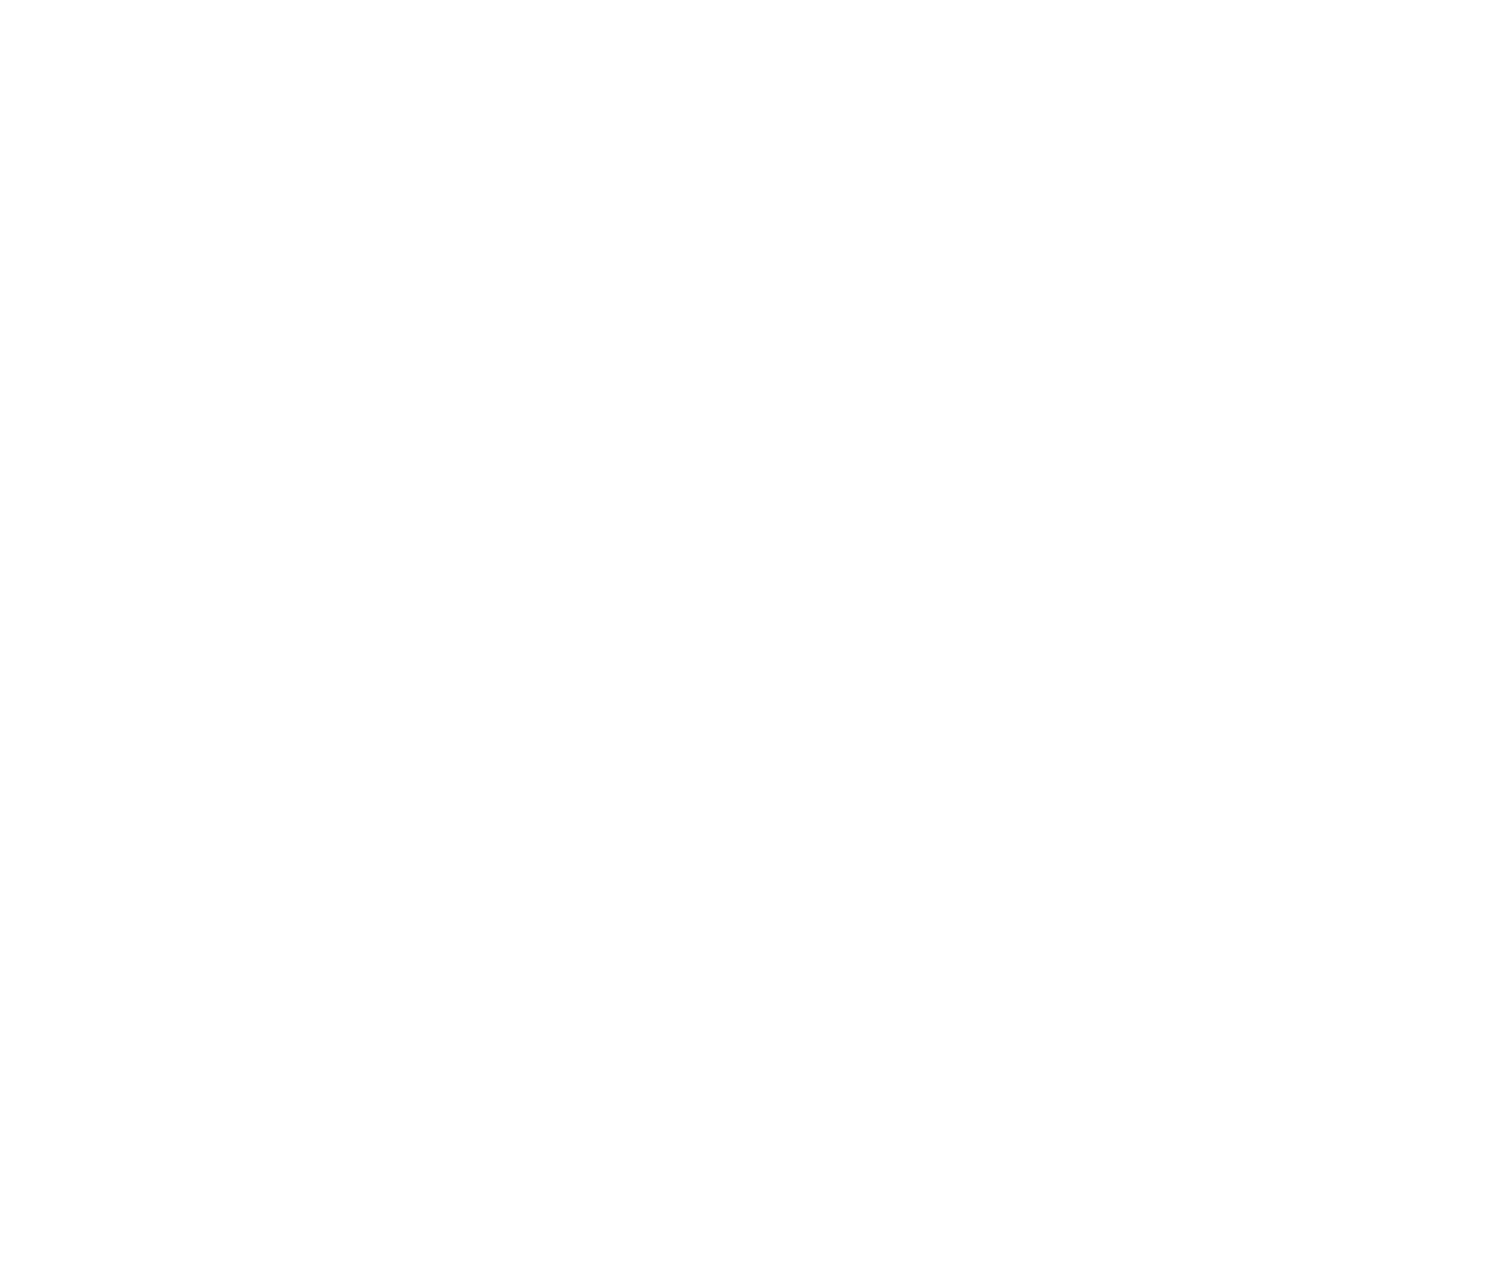 Forward Operating Base Brewing Company